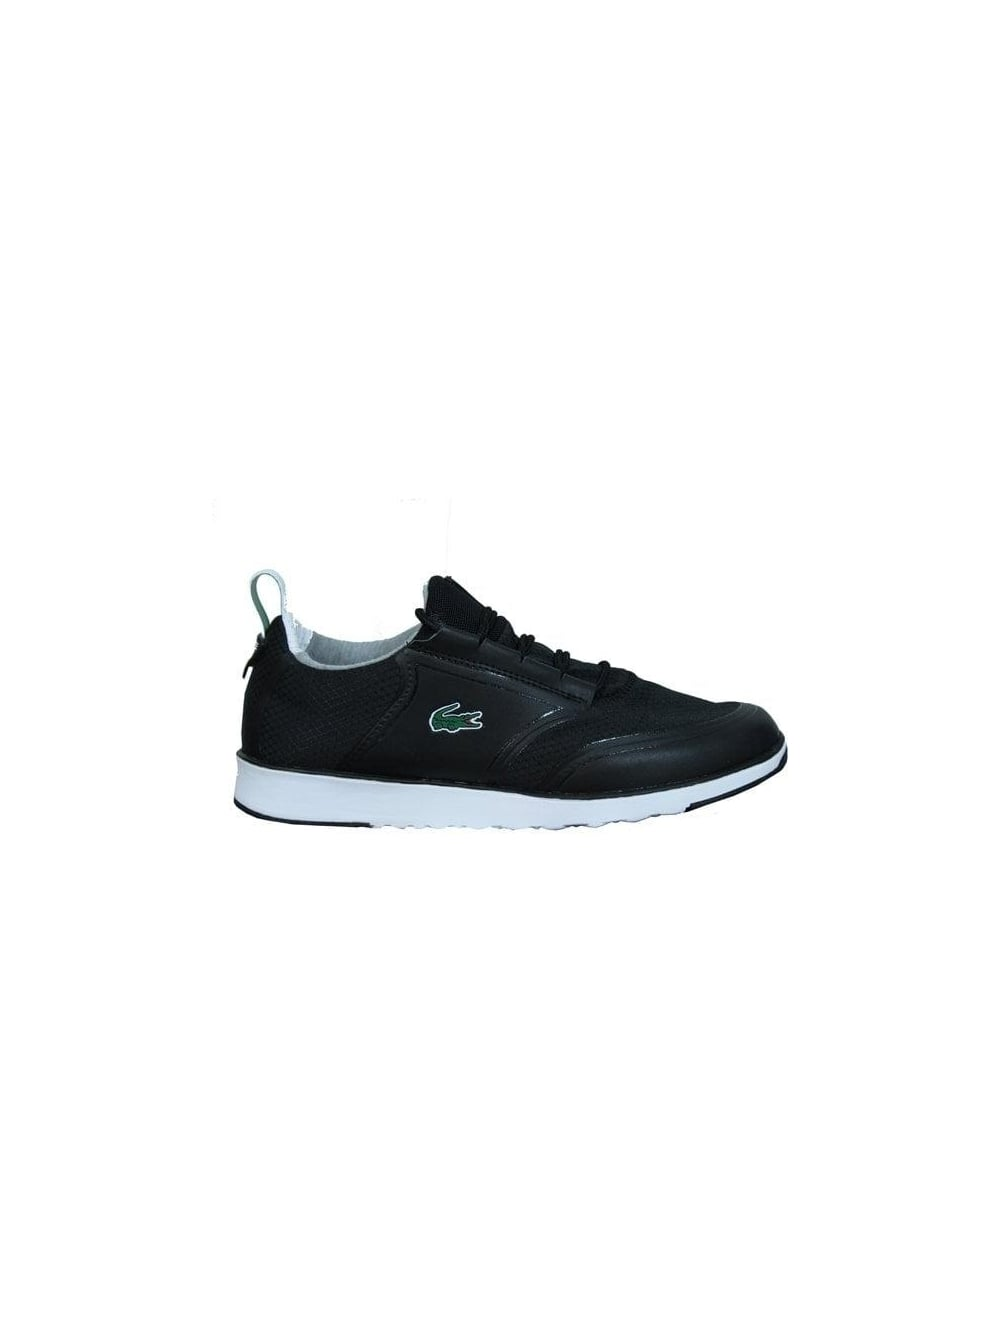 68afb67ed936f Lacoste Light LT12 SPM Trainers in Black Black - Northern Threads